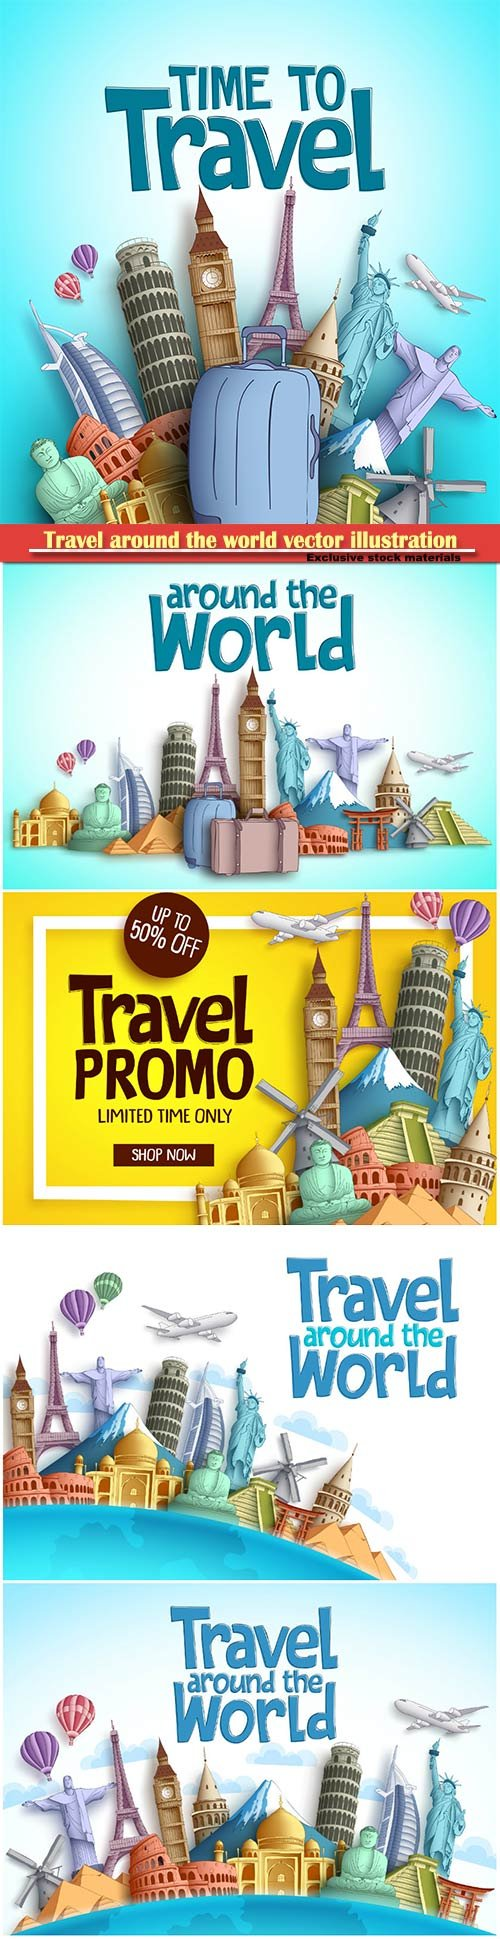 Travel around the world vector illustration